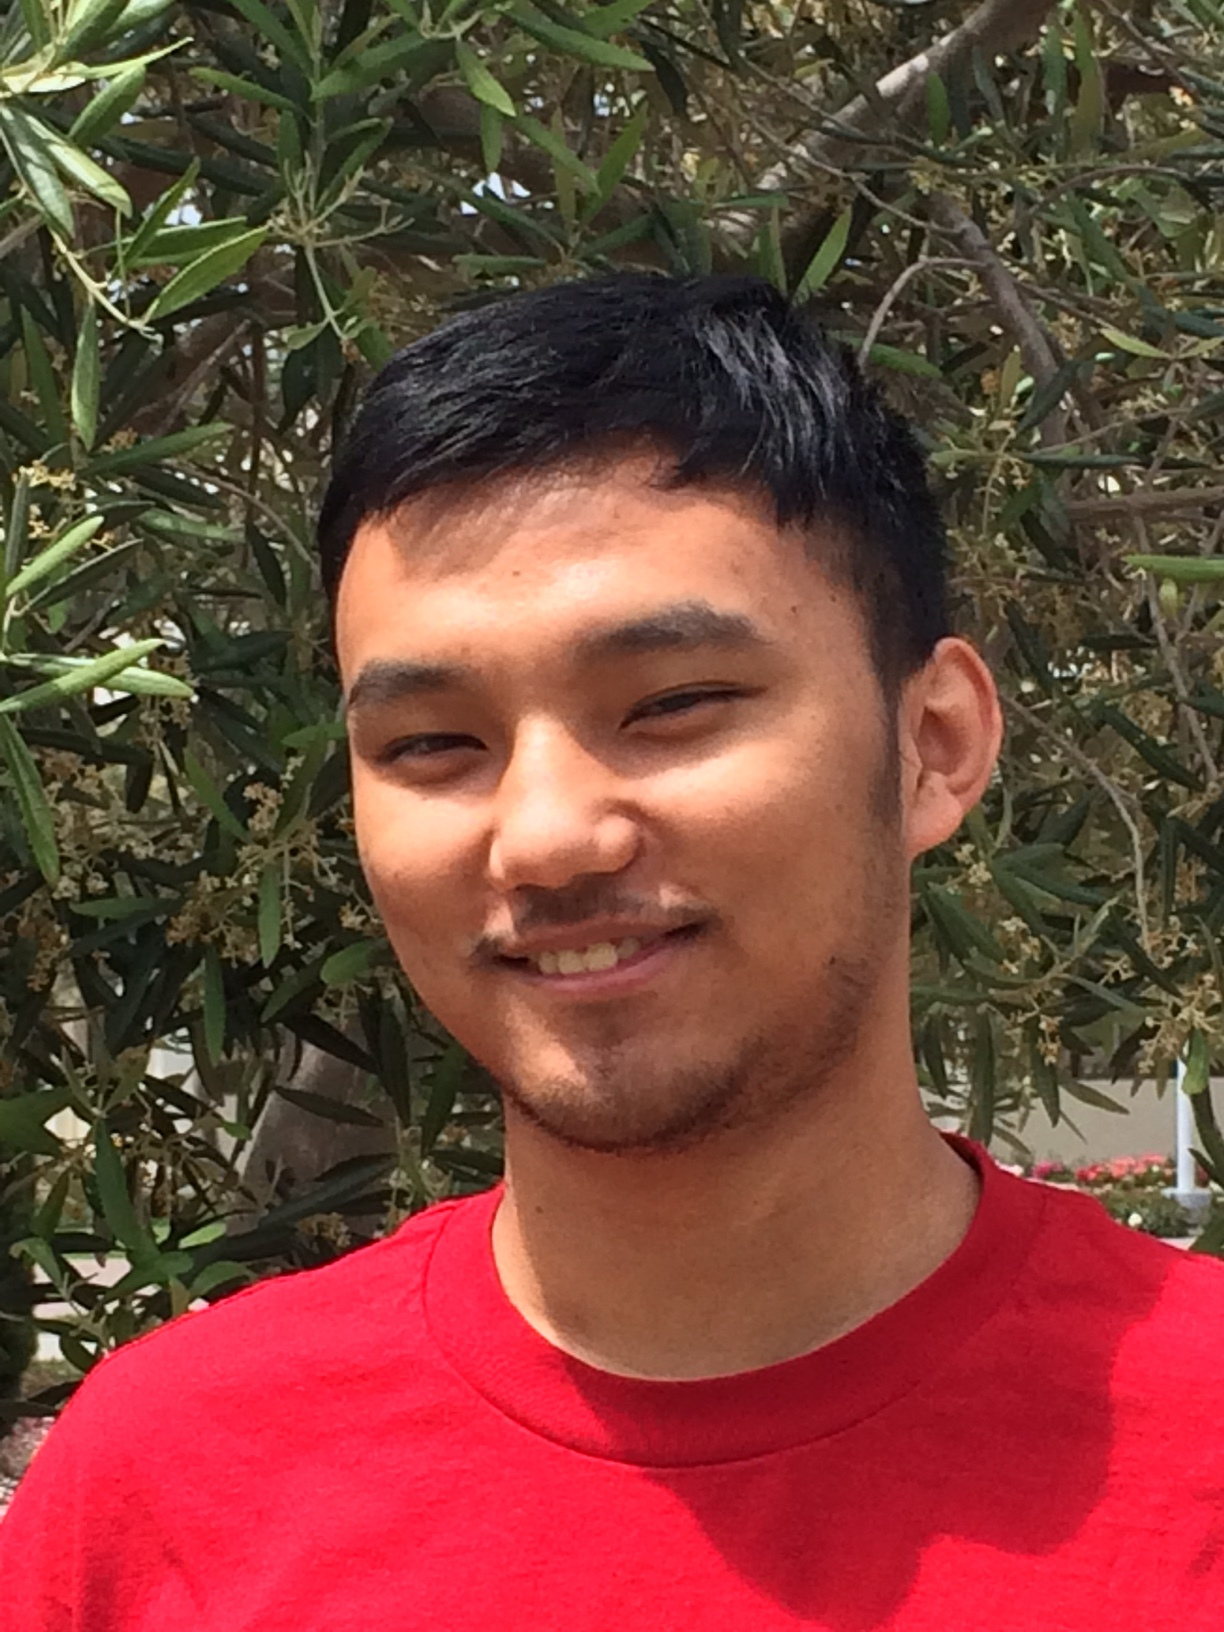 """S. Bista, Kathmandu, Nepal - """"I am going to pursue computer science at Arkansas Tech University. At Cañada College, I met a lot of people who were interested in computer programming."""""""